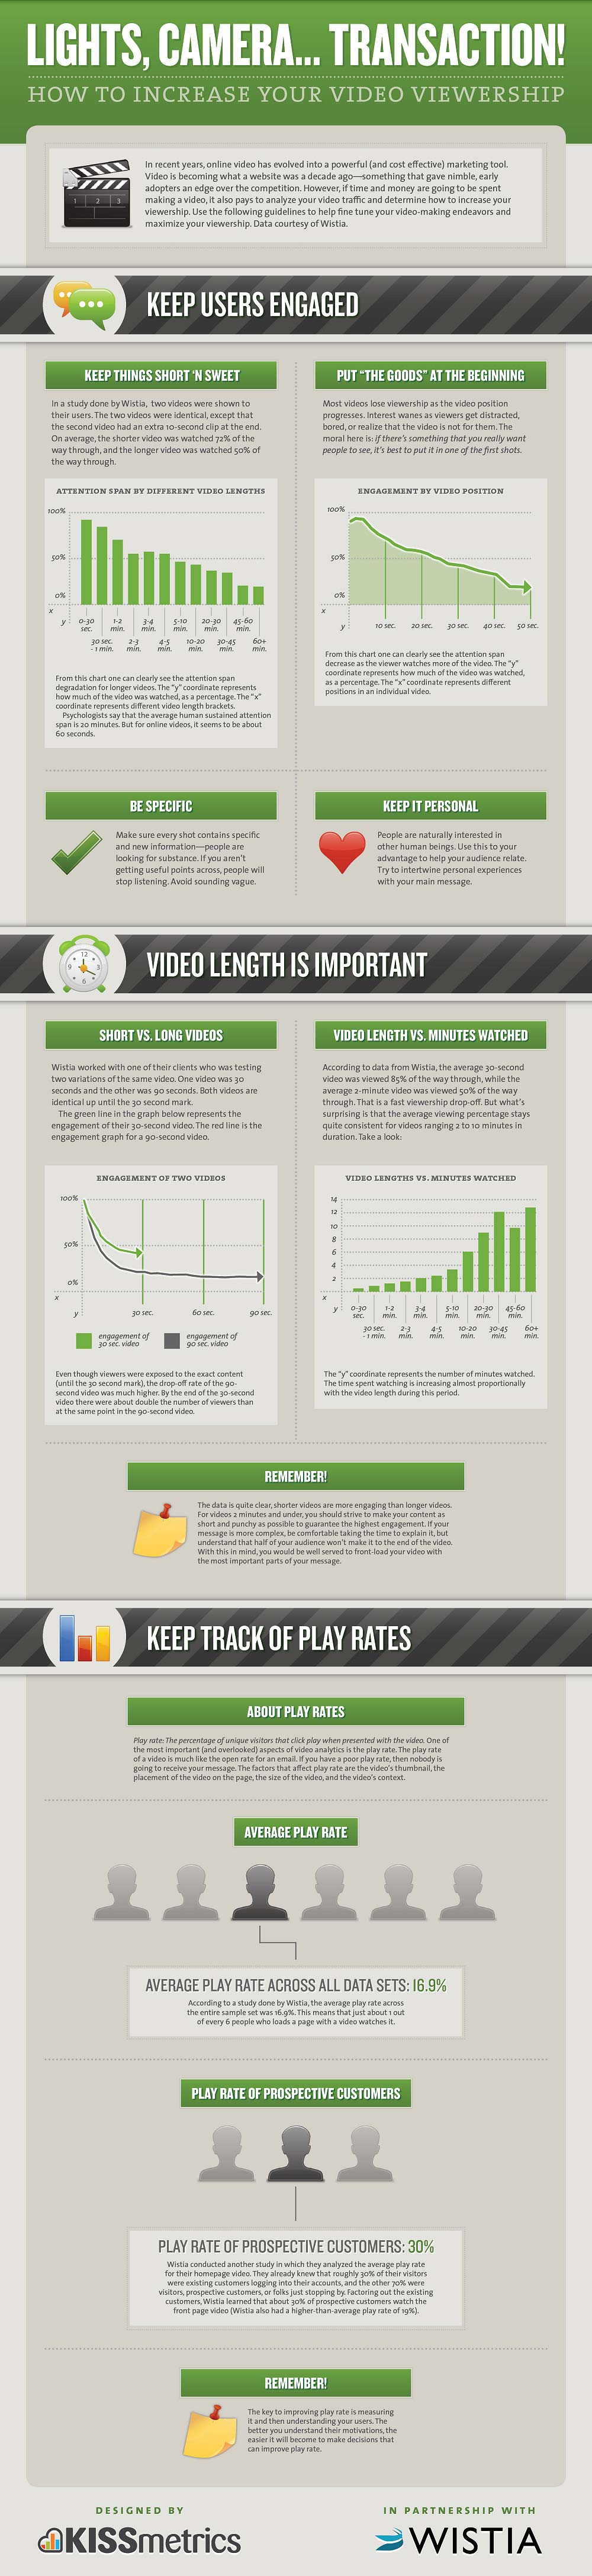 Online-video-content_improve-viewership-and-rankings.jpg